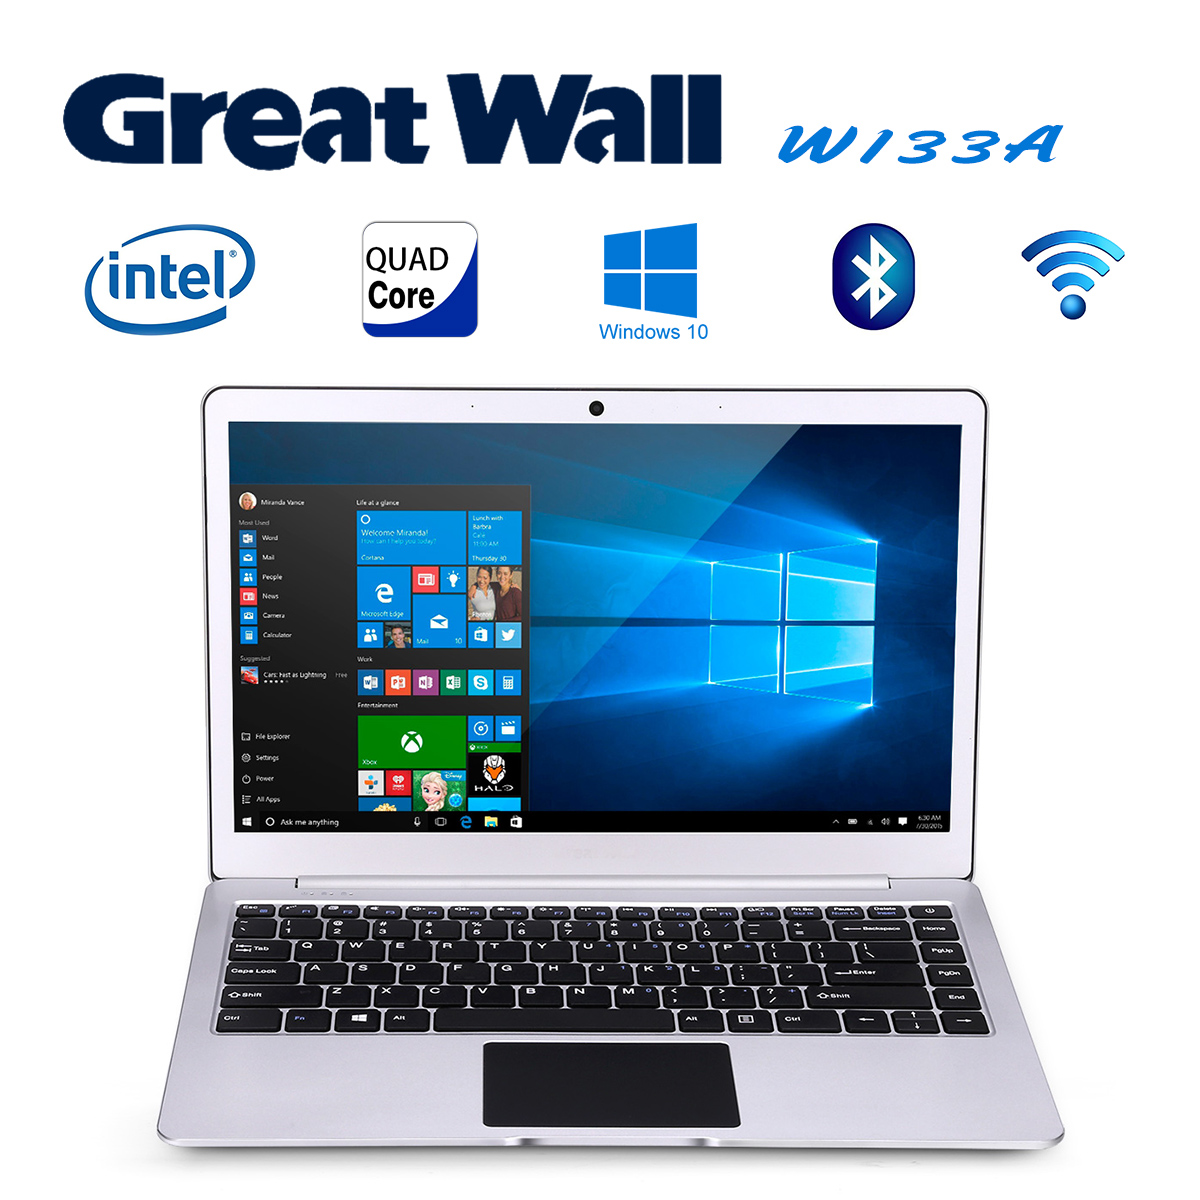 Great Wall W1333A Laptop 13.3